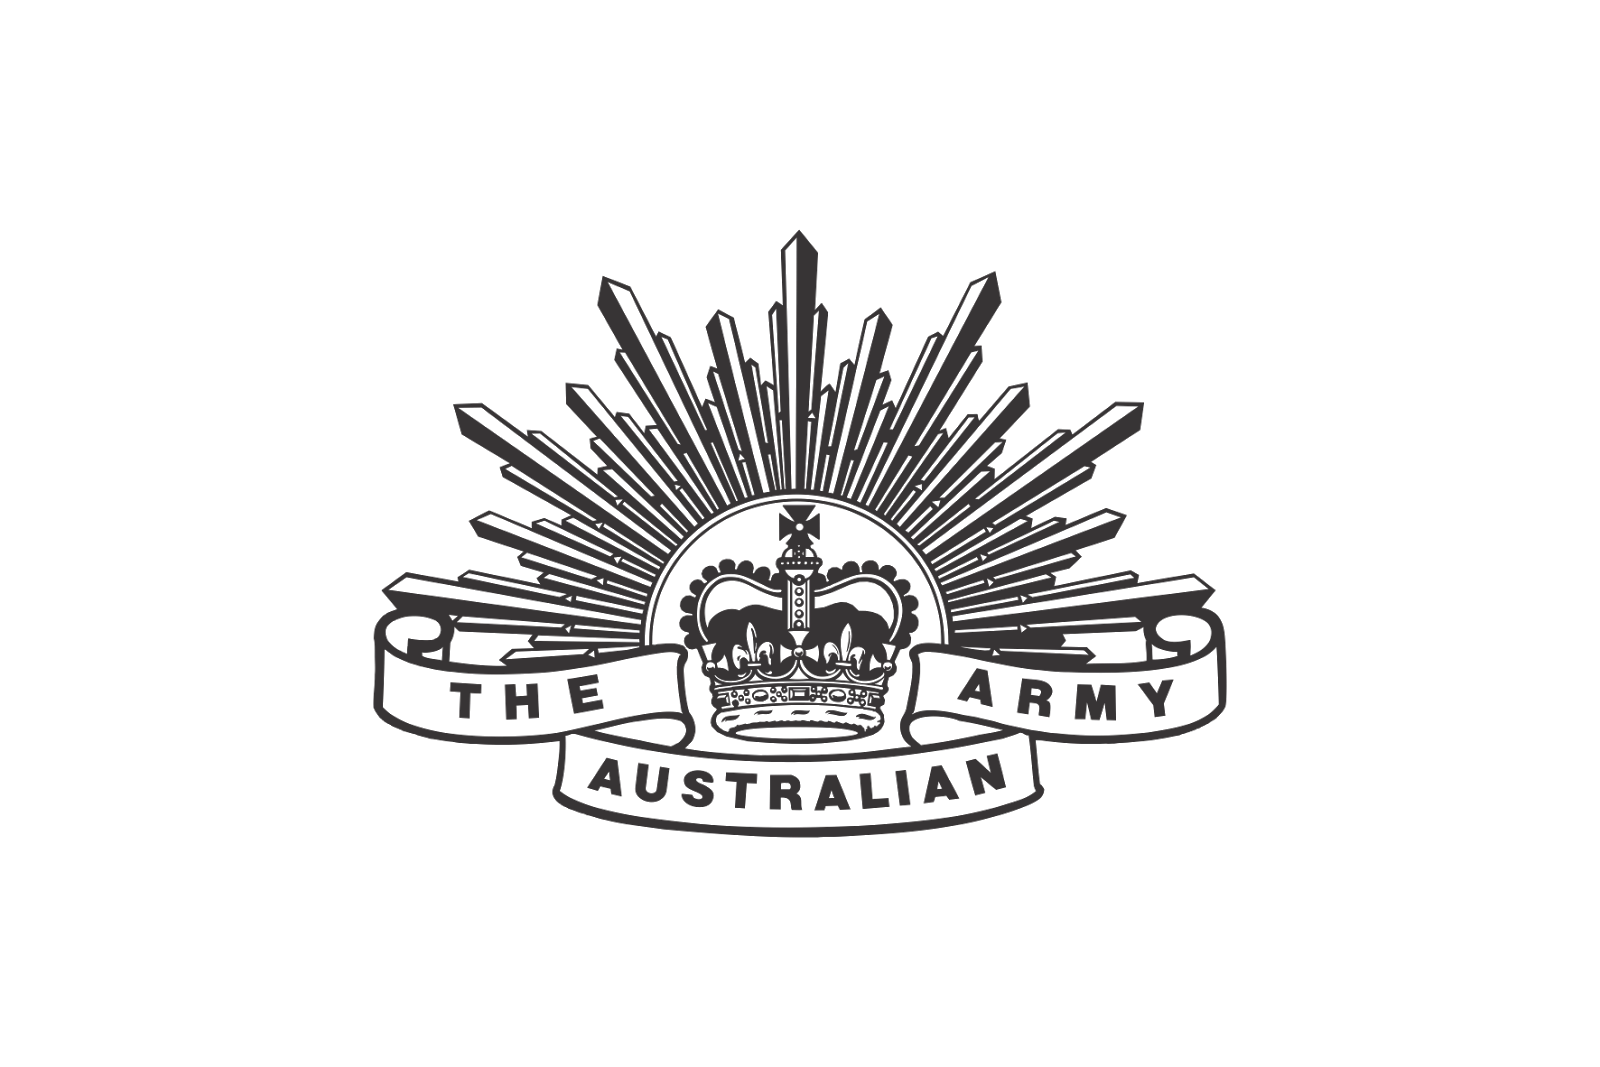 Logo computer icons download brand australian and new zealand army.